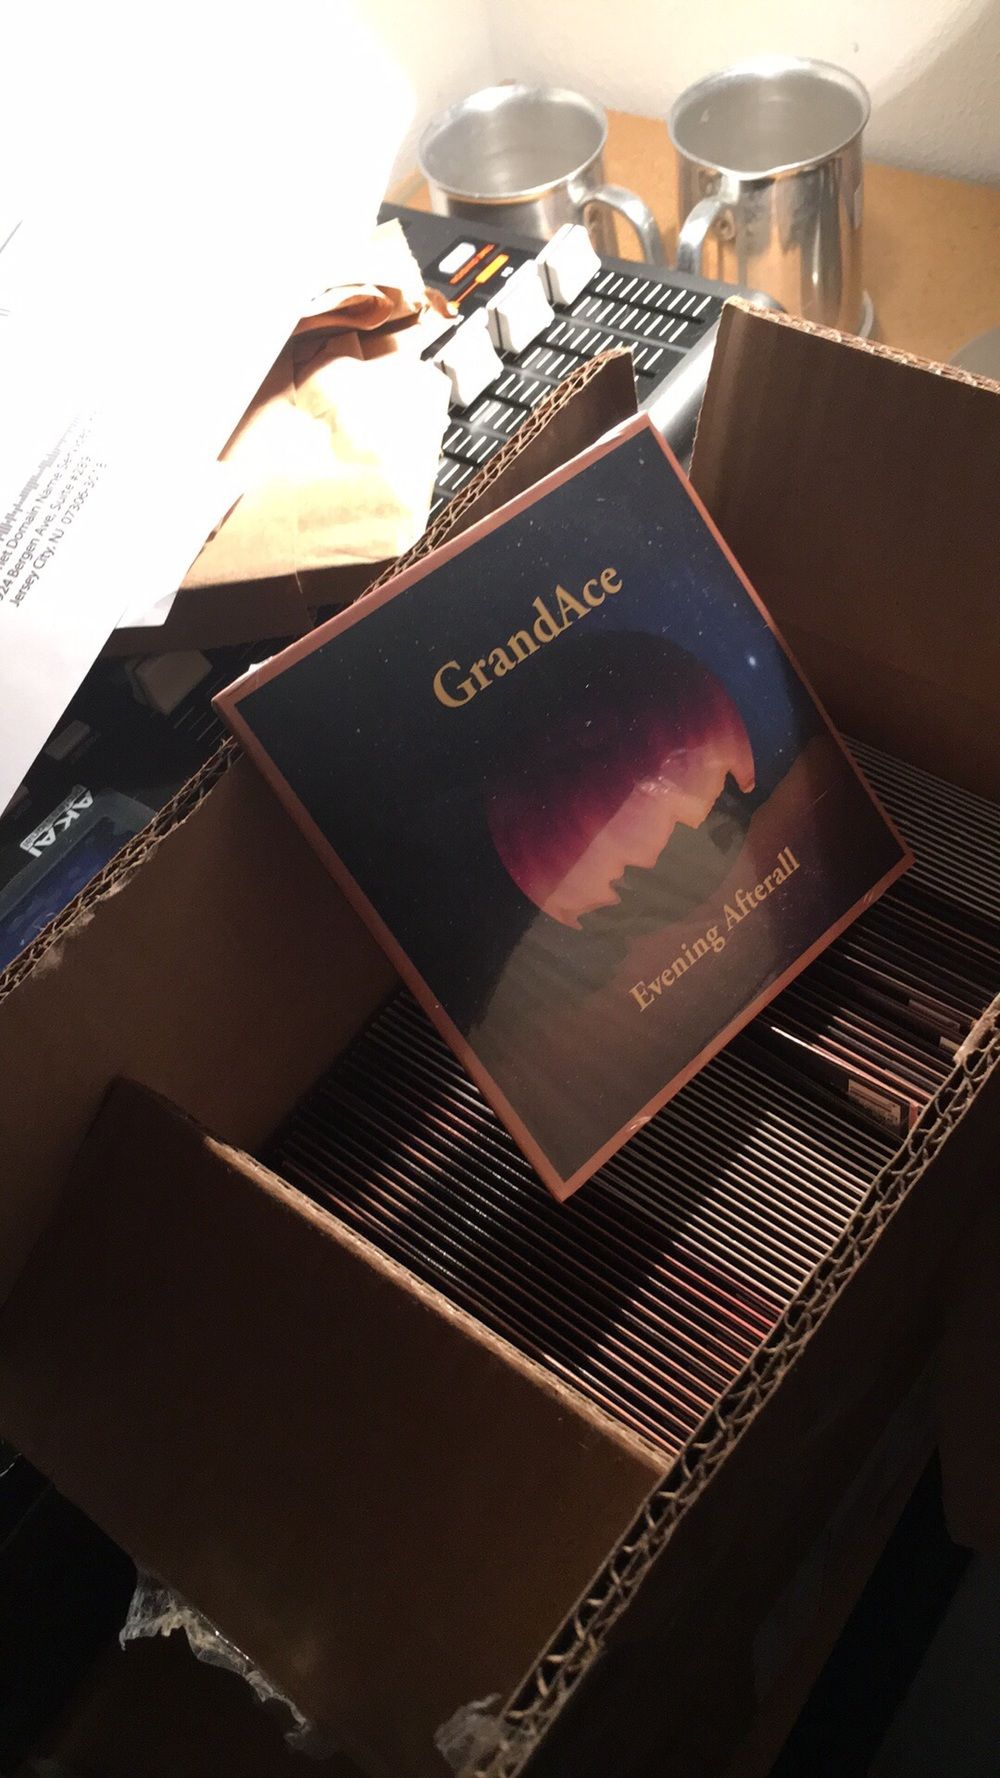 Will soon be available on cd baby and for purchase locally!